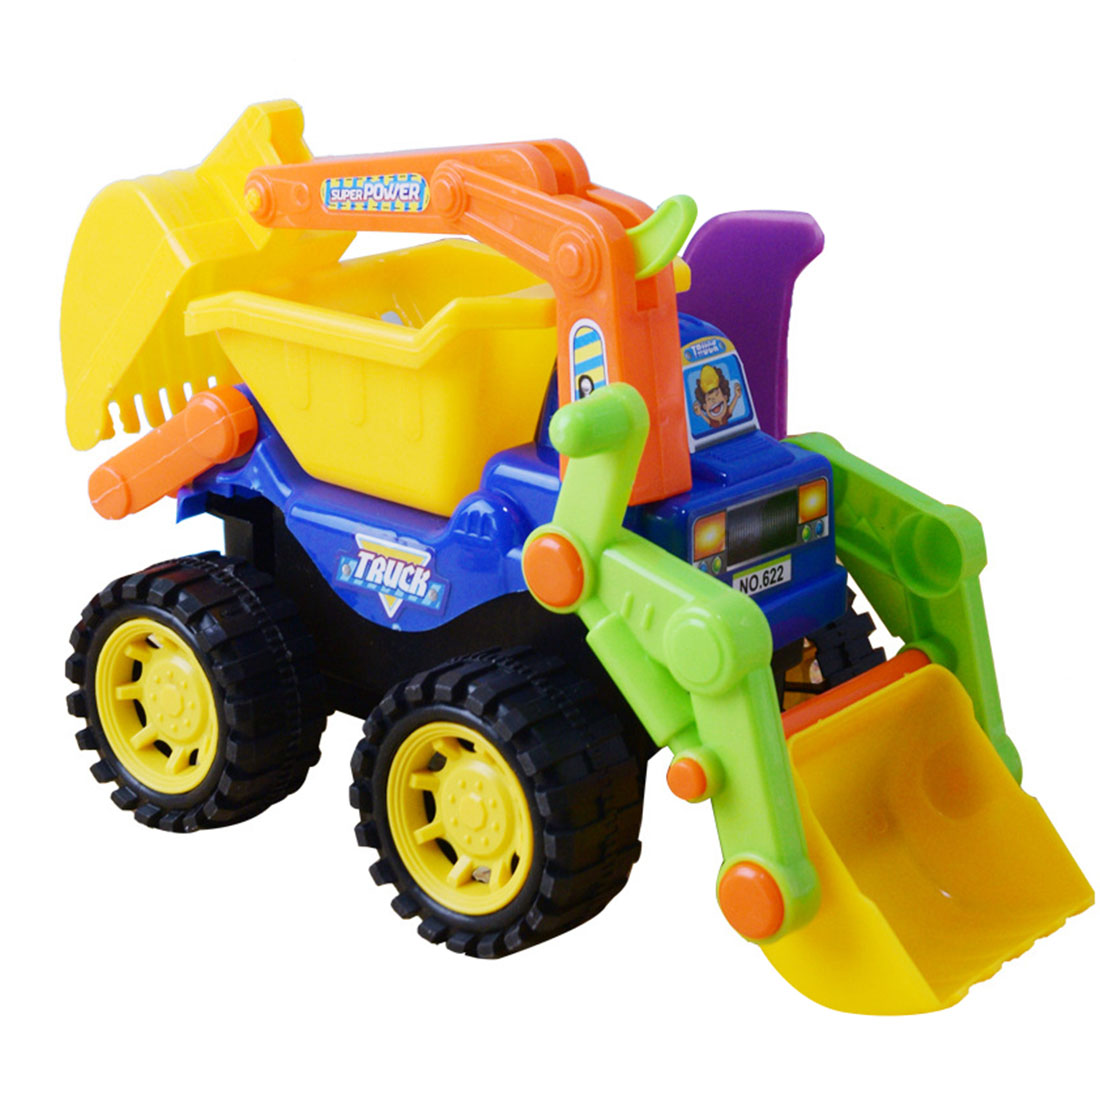 Popular Real Toy Cars-Buy Cheap Real Toy Cars Lots From